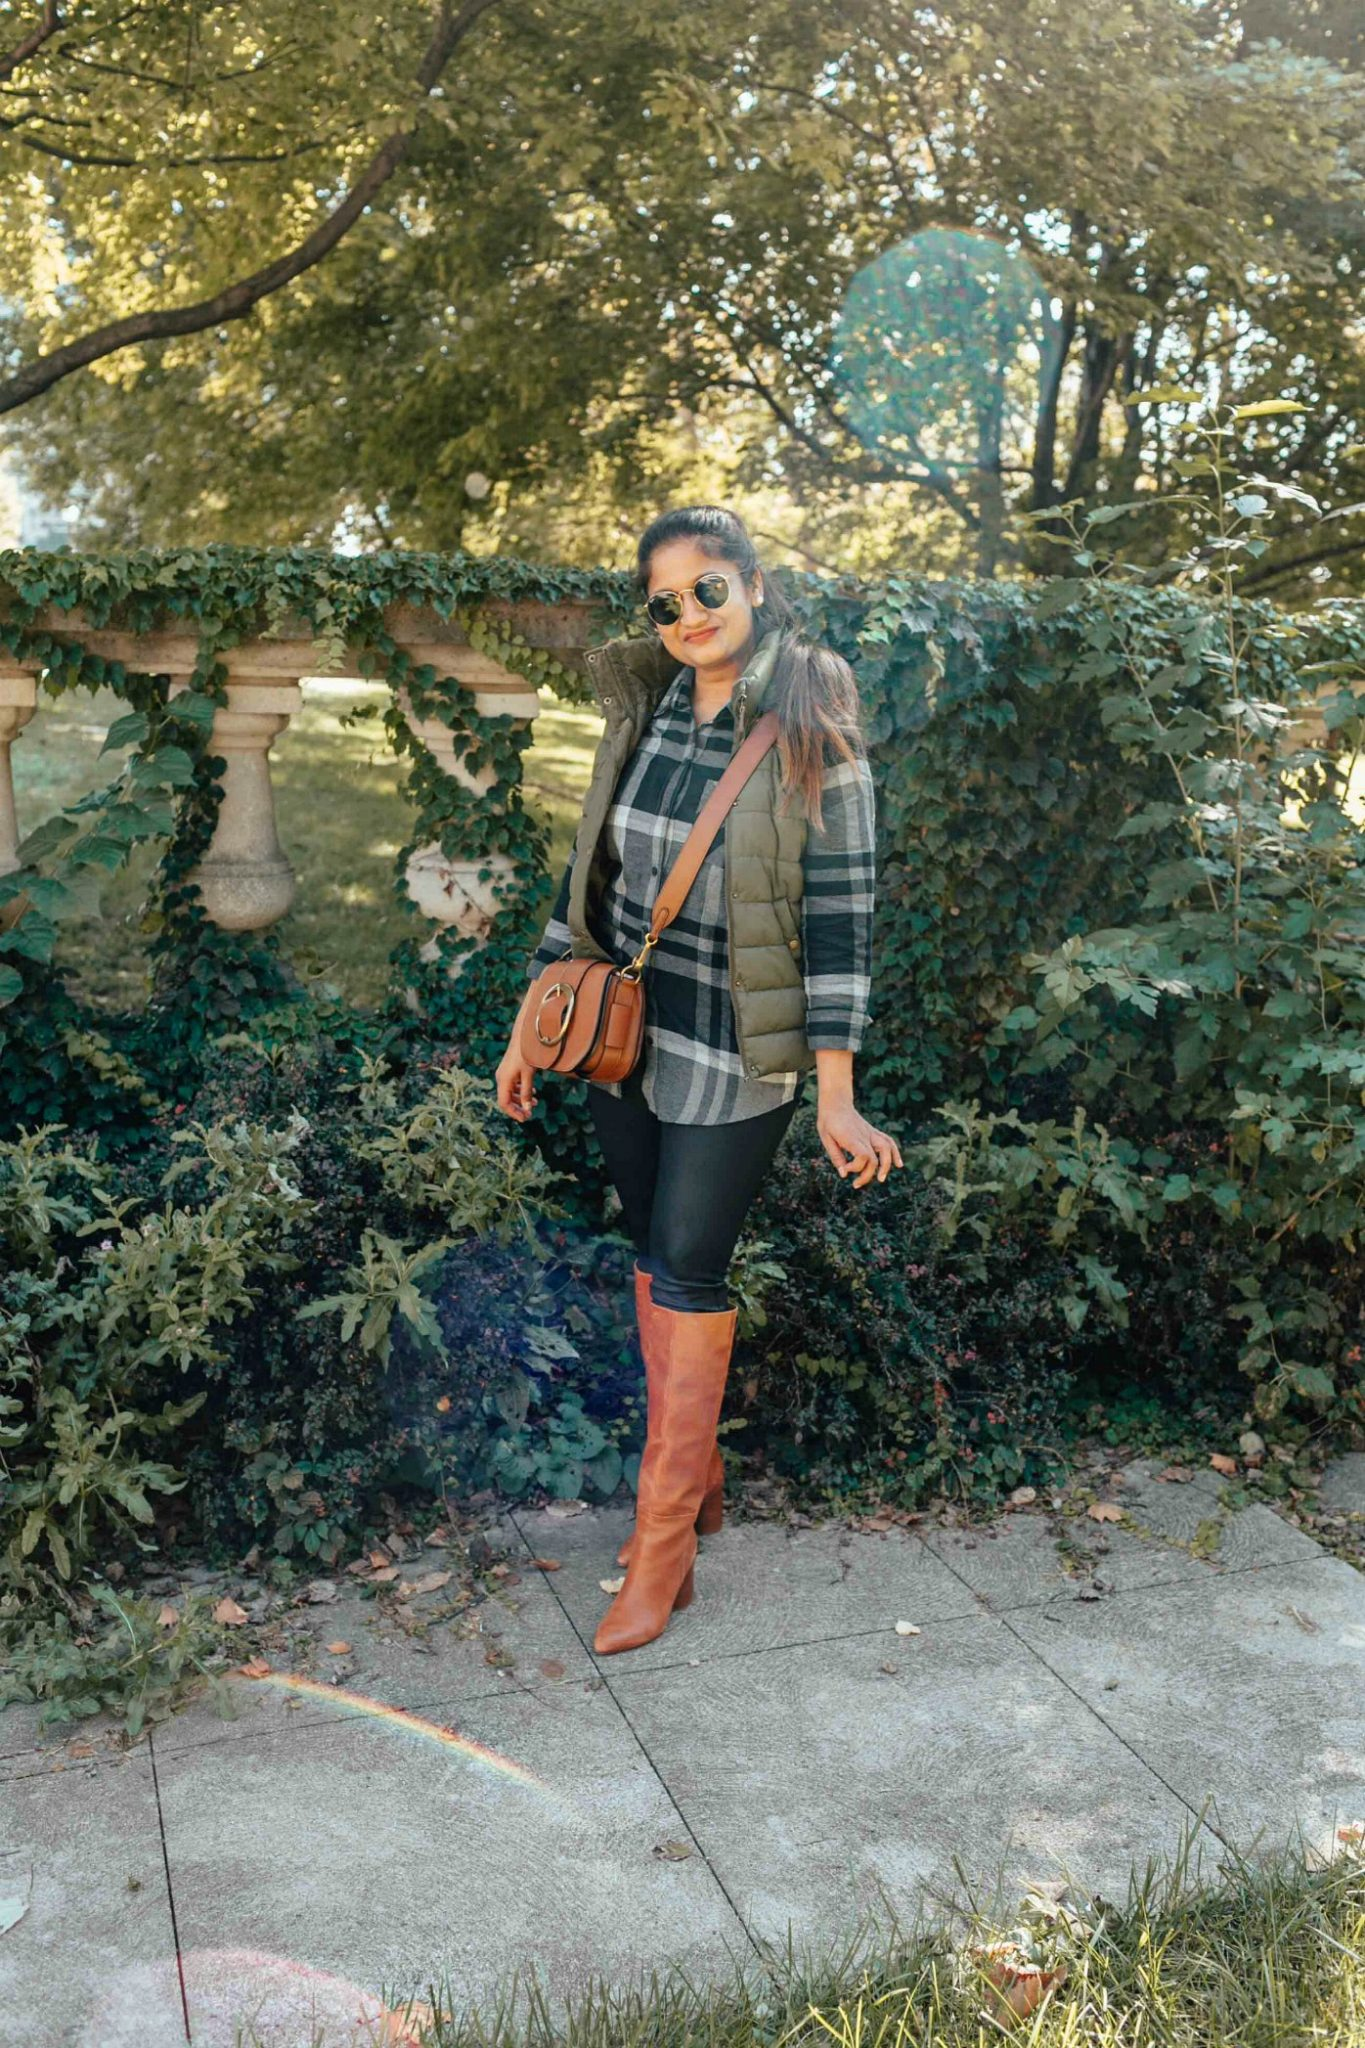 wearing Ralph Lauren Pebbled Leather Lennox Bag Saddle bag (1) | Eddie Bauer boyfriend flannel shirt styled 4 ways, featured by top US modest fashion blog, Dreaming Loud